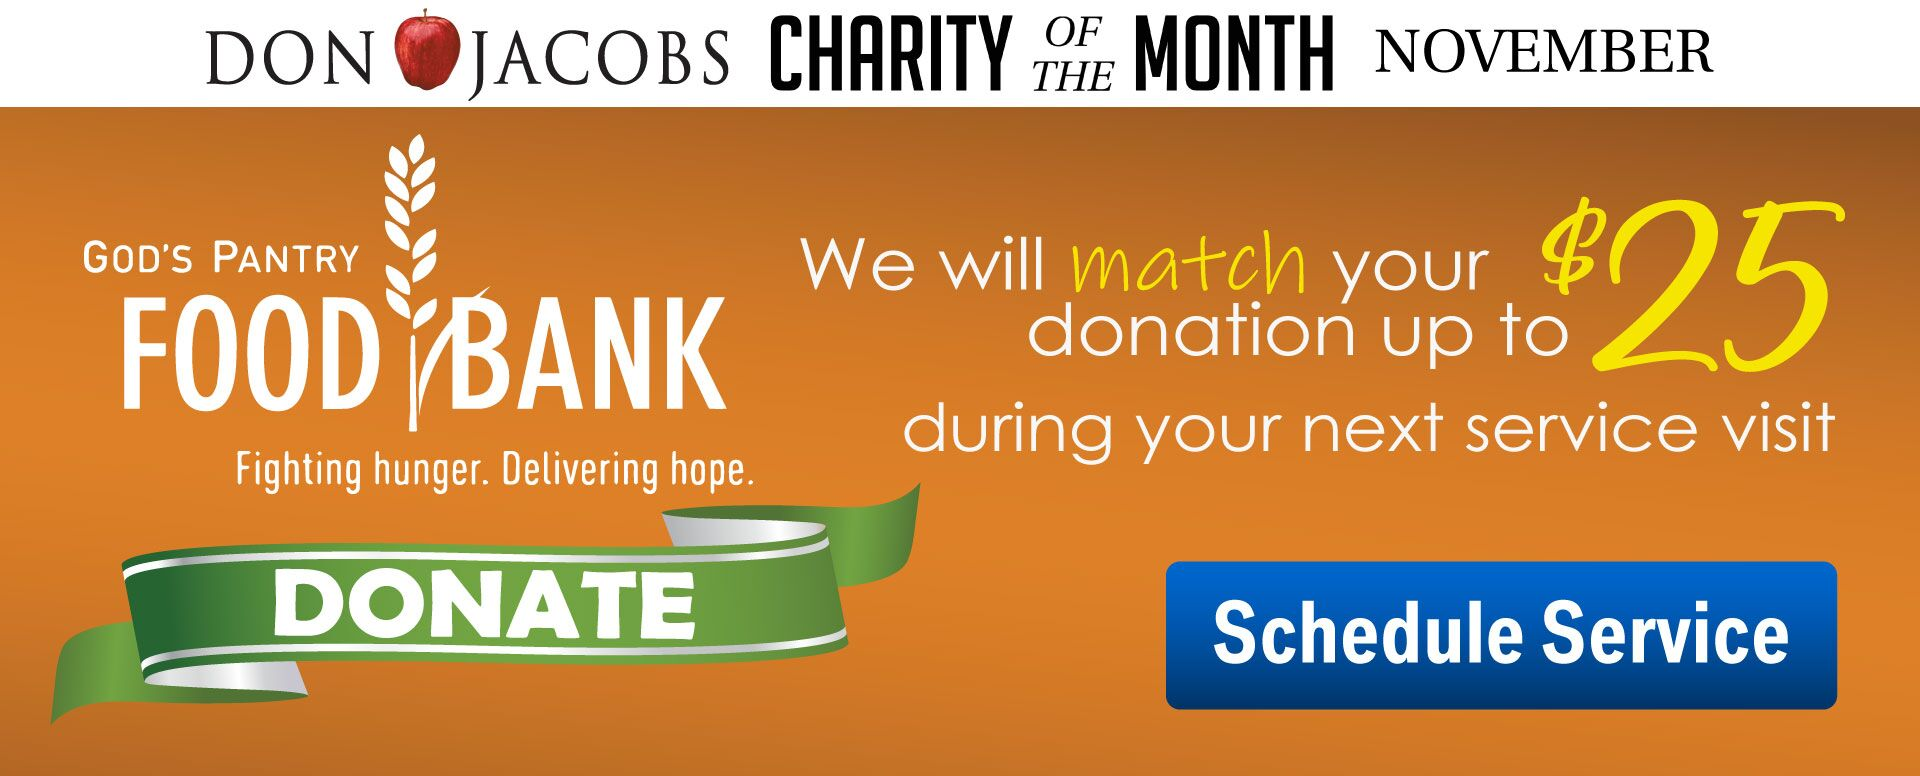 Charity of the Month - God's Pantry Food Bank